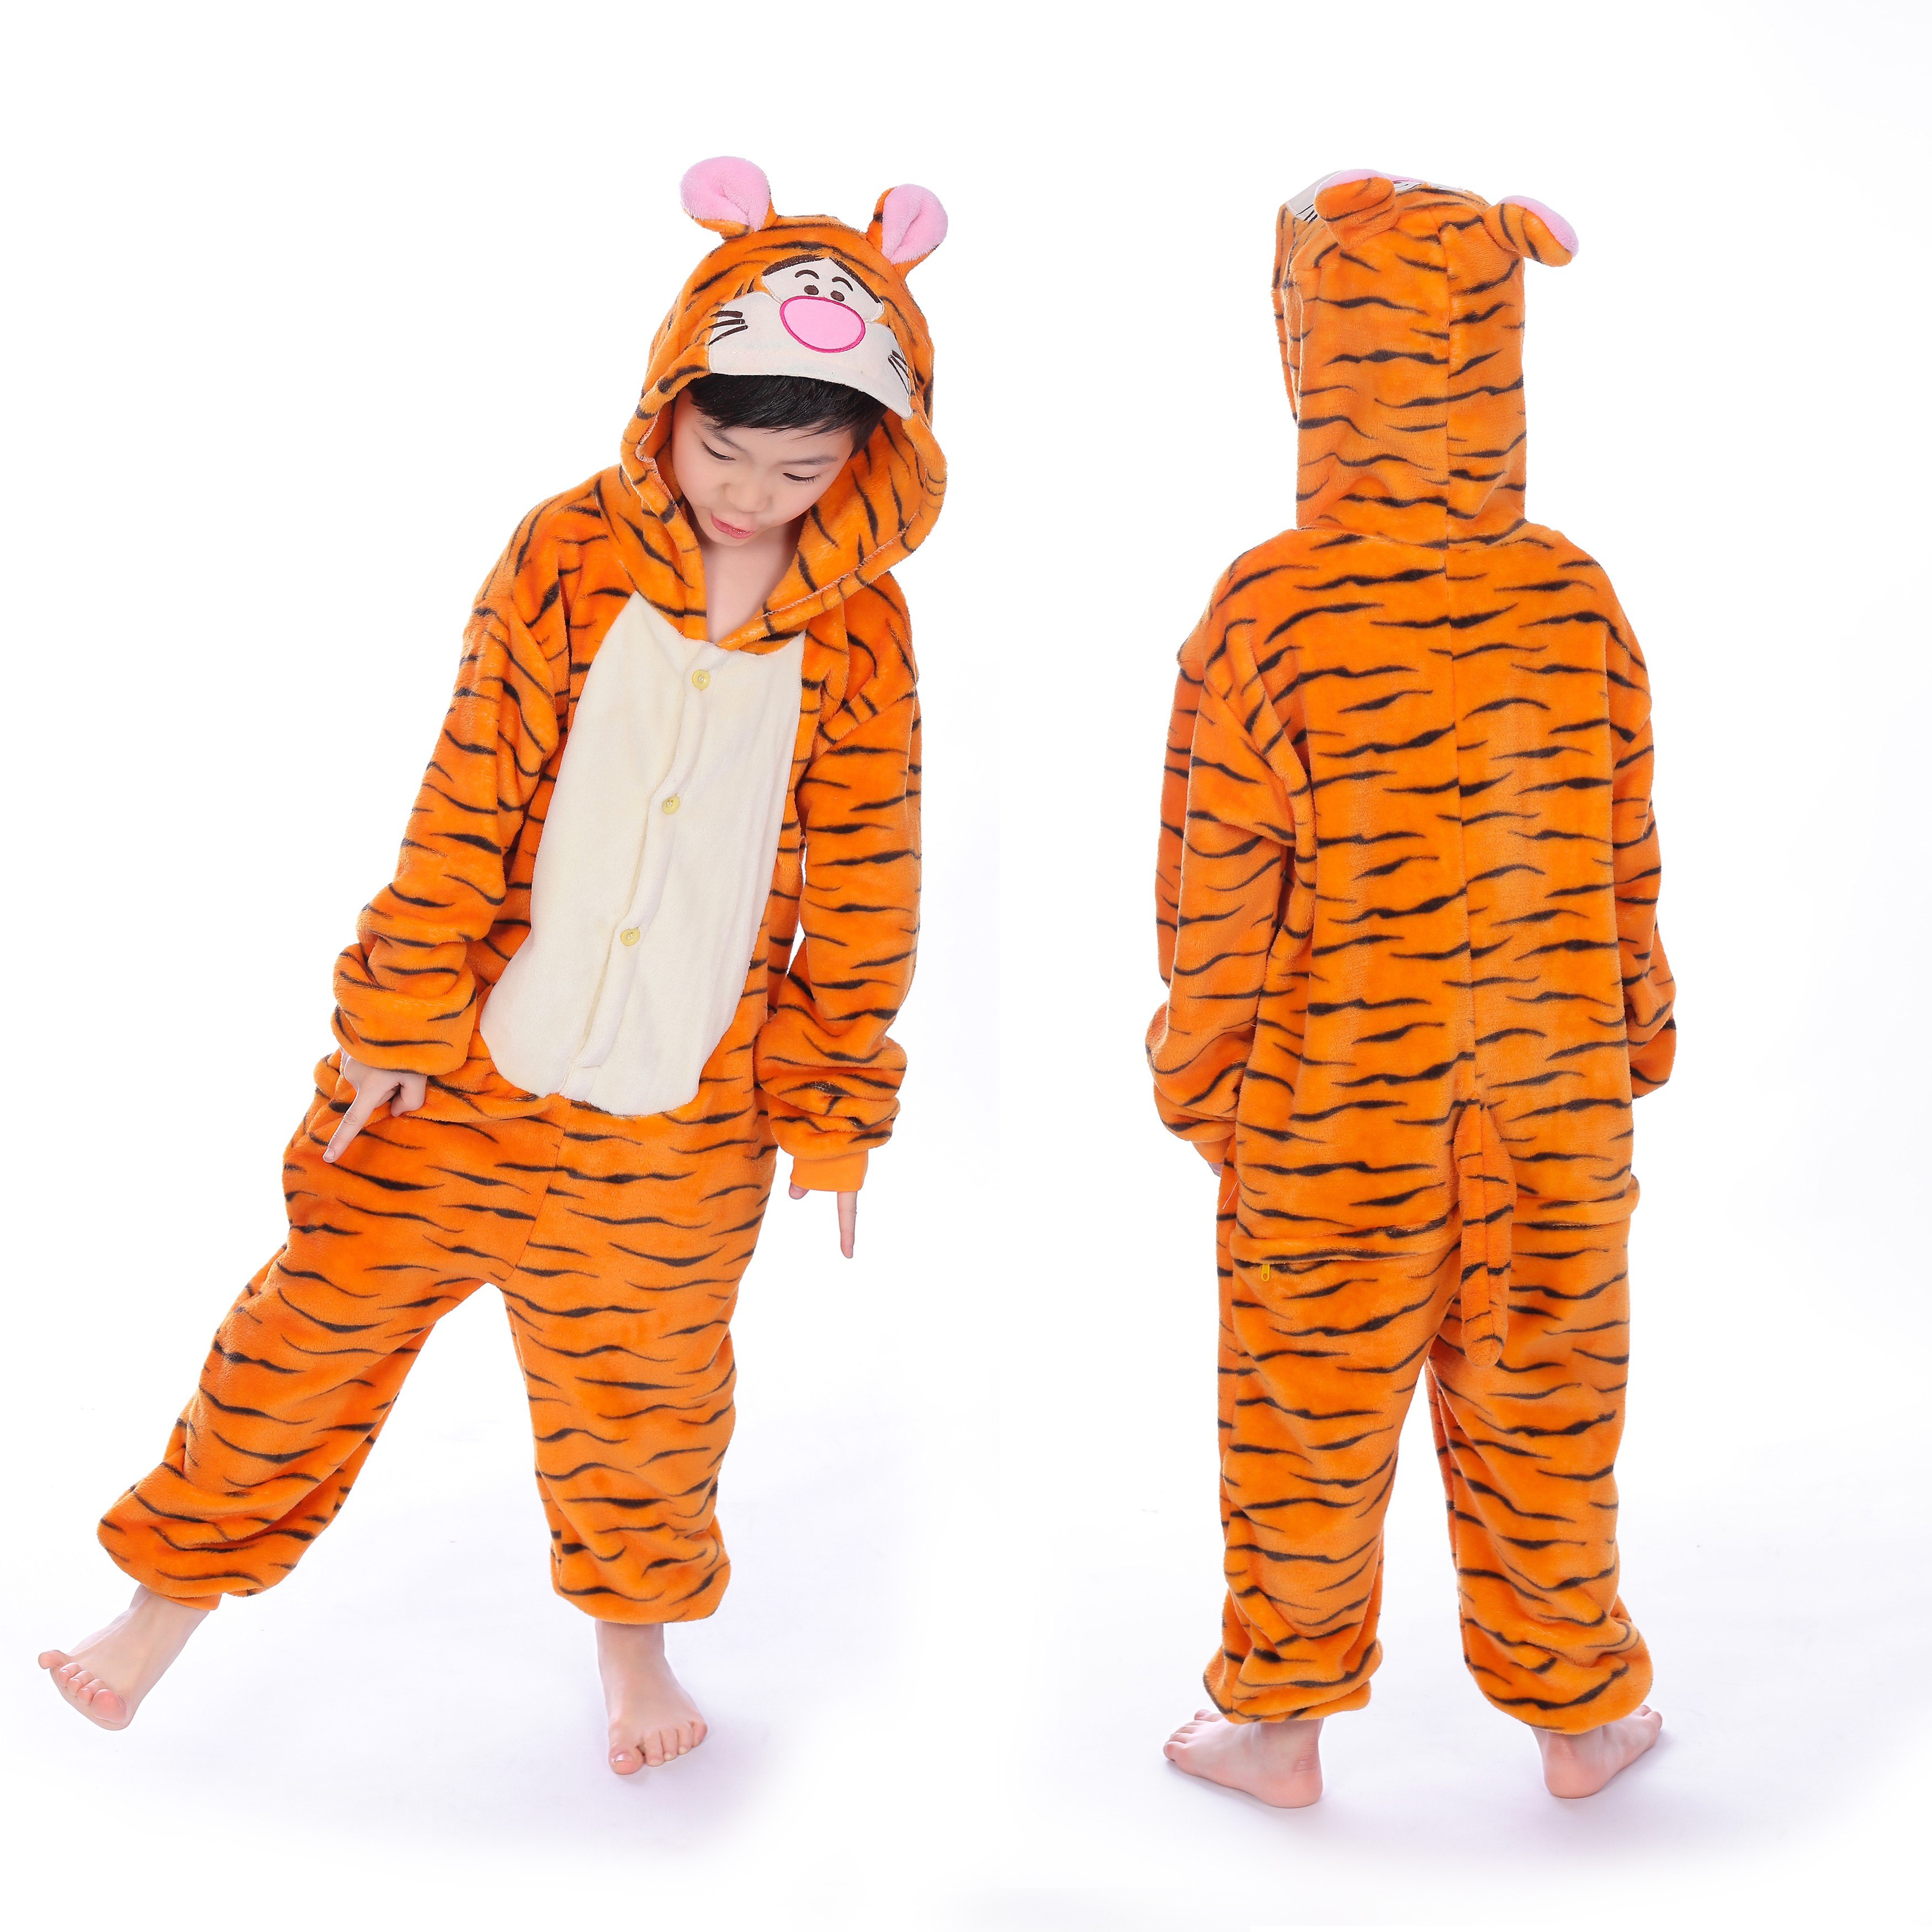 016239188f Winnie the Pooh Tigger Onesie for Kid Animal Kigurumi Pajama Halloween  Party Costumes